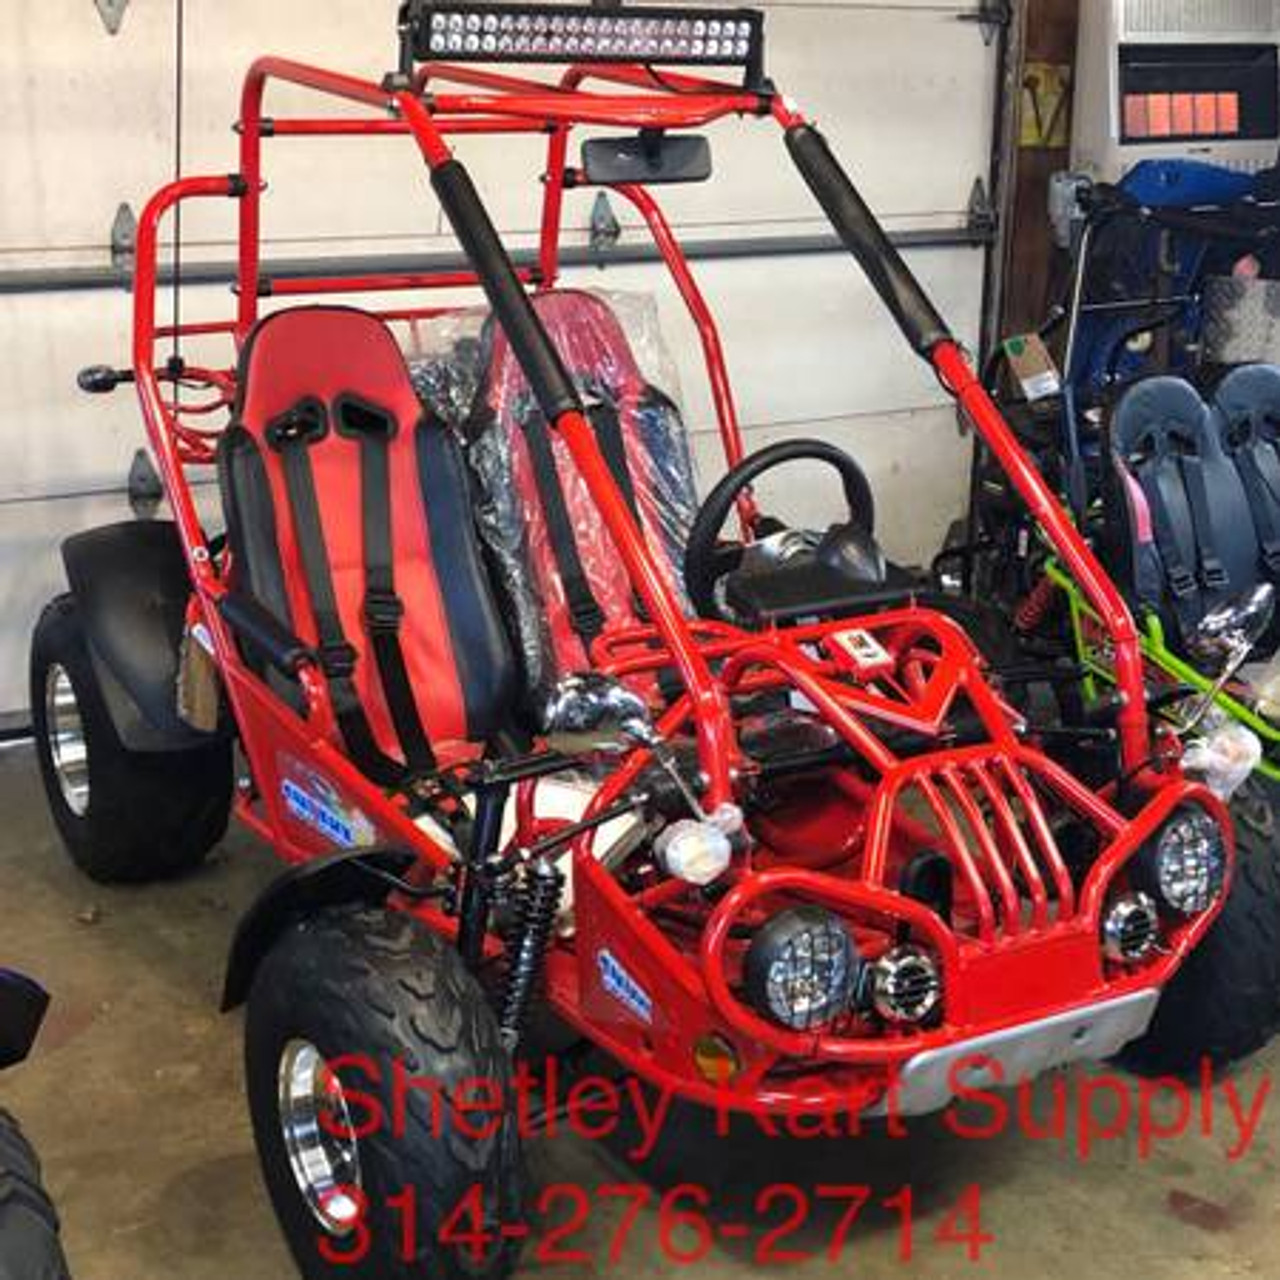 Trailmaster Xrx 150 (Free shipping) Some assembly